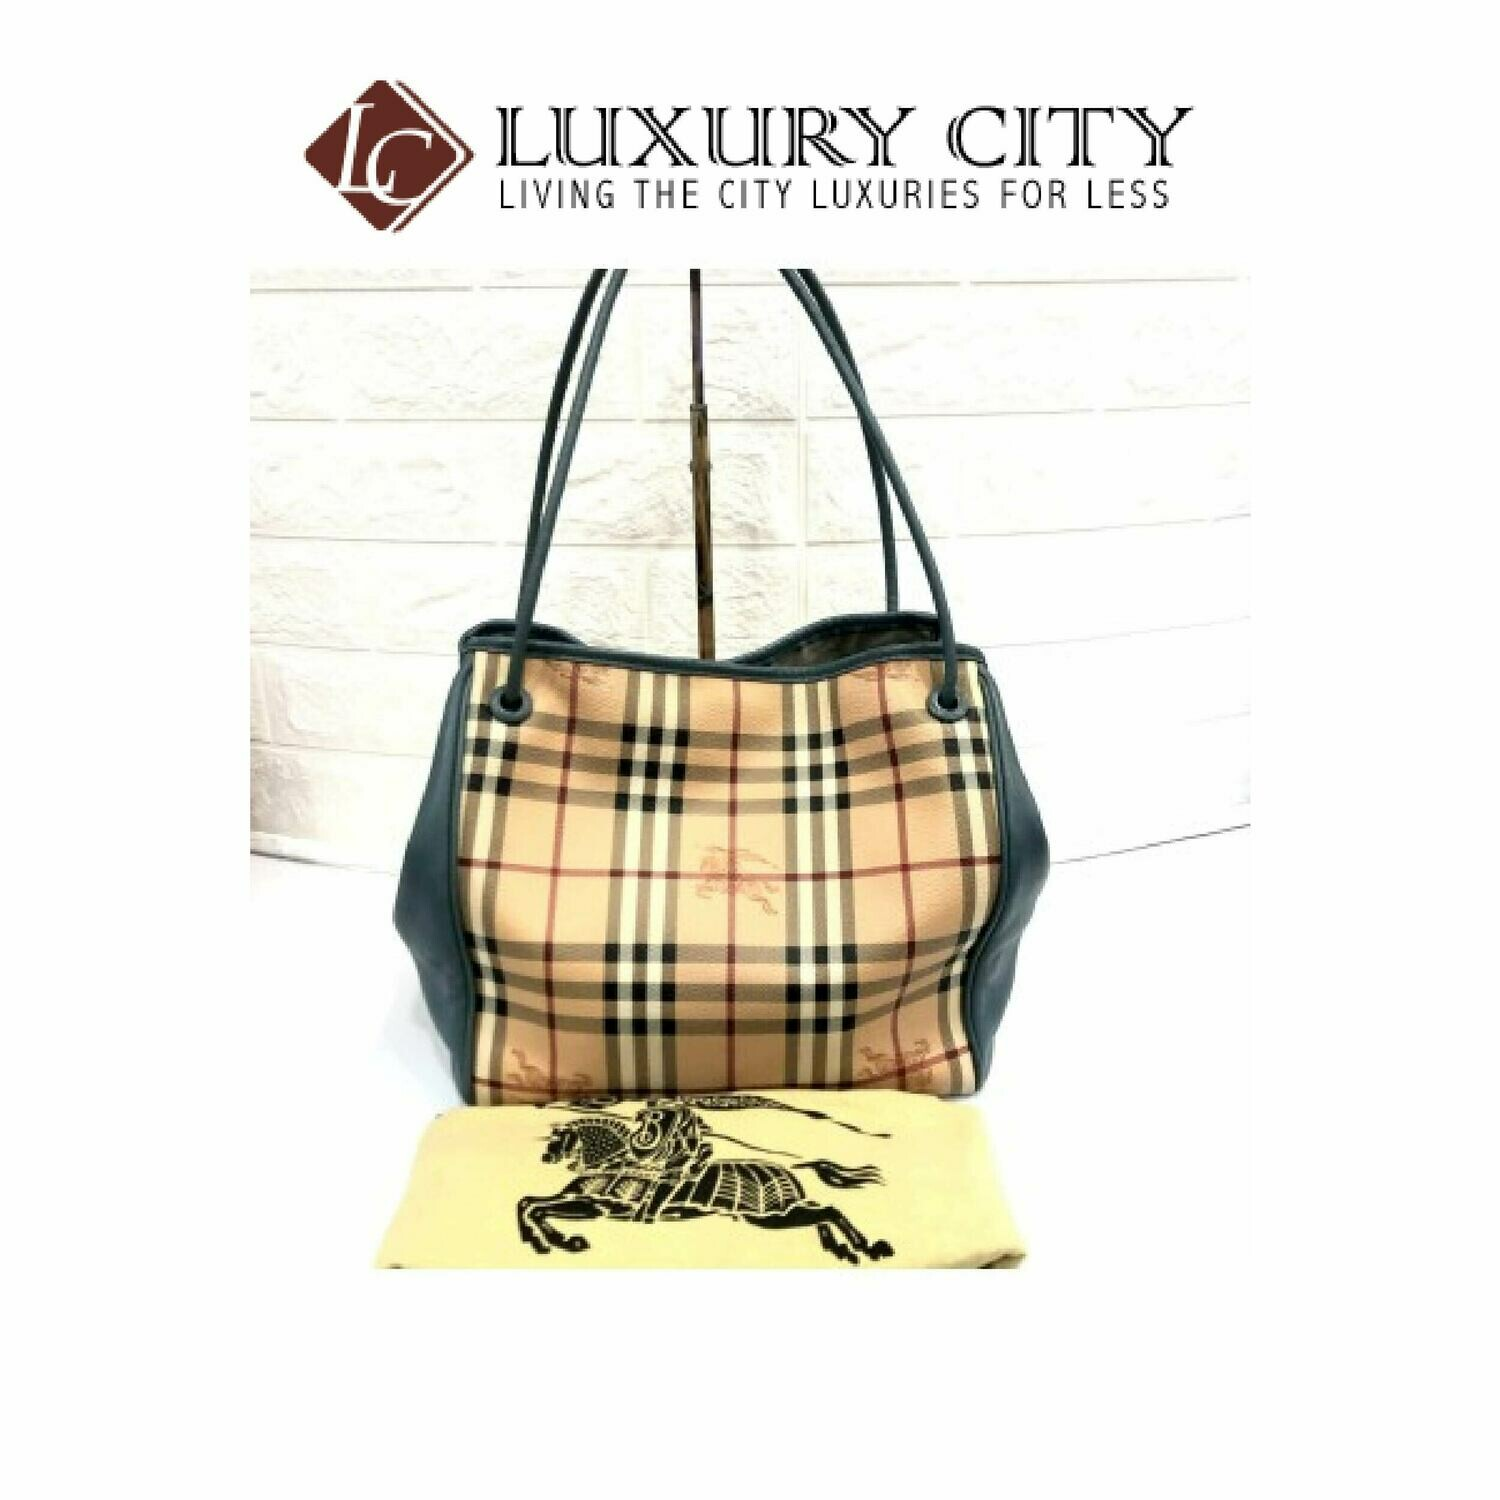 [Luxury City] Preloved Authentic Burberry Shoulder Bag